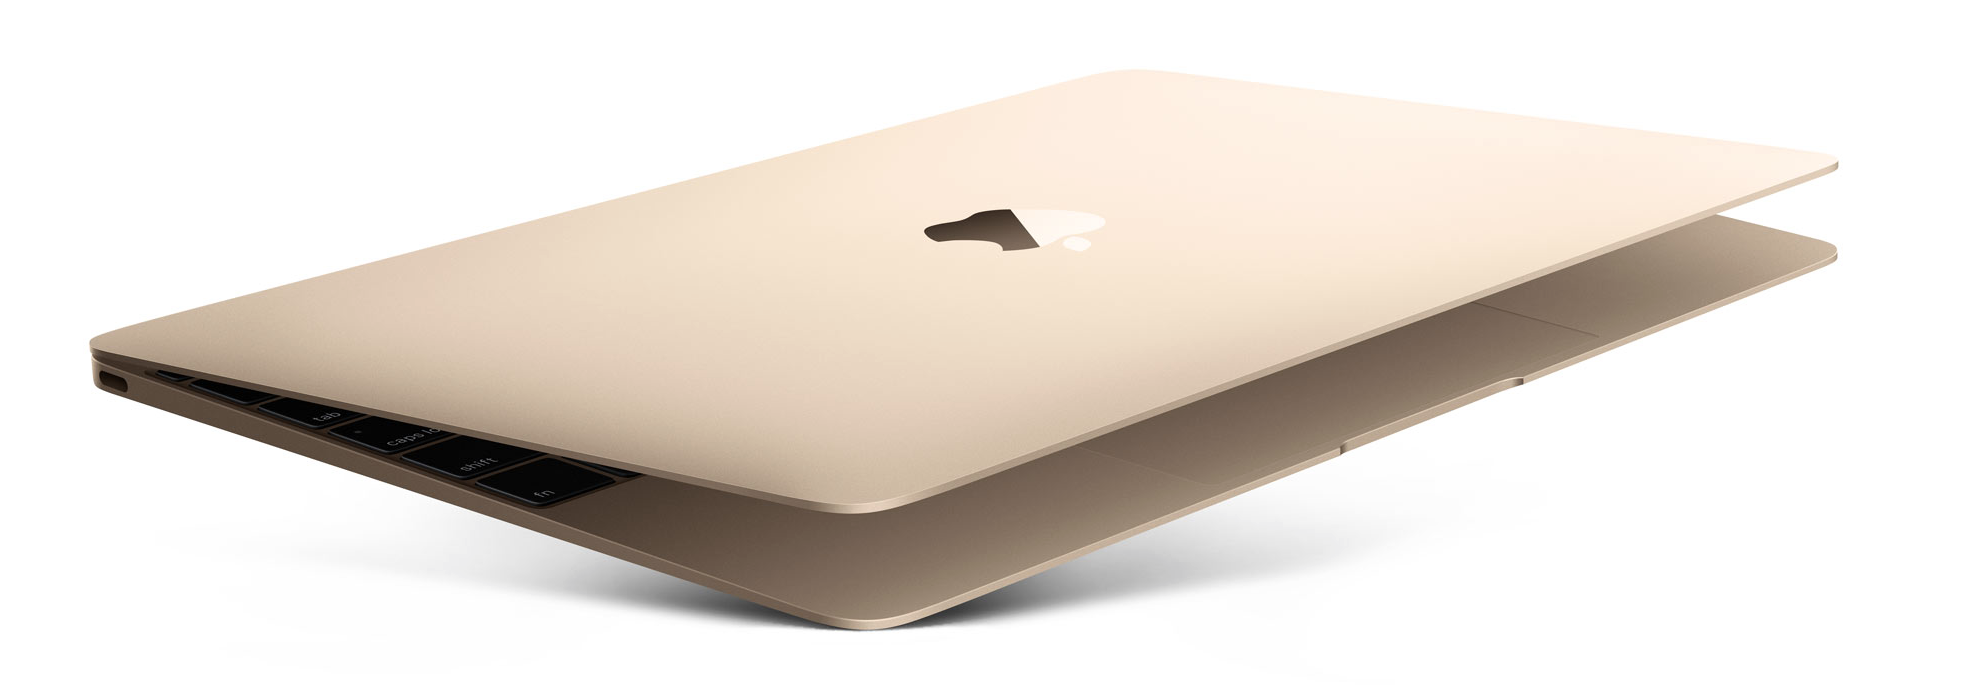 nuovo-macbook-2015